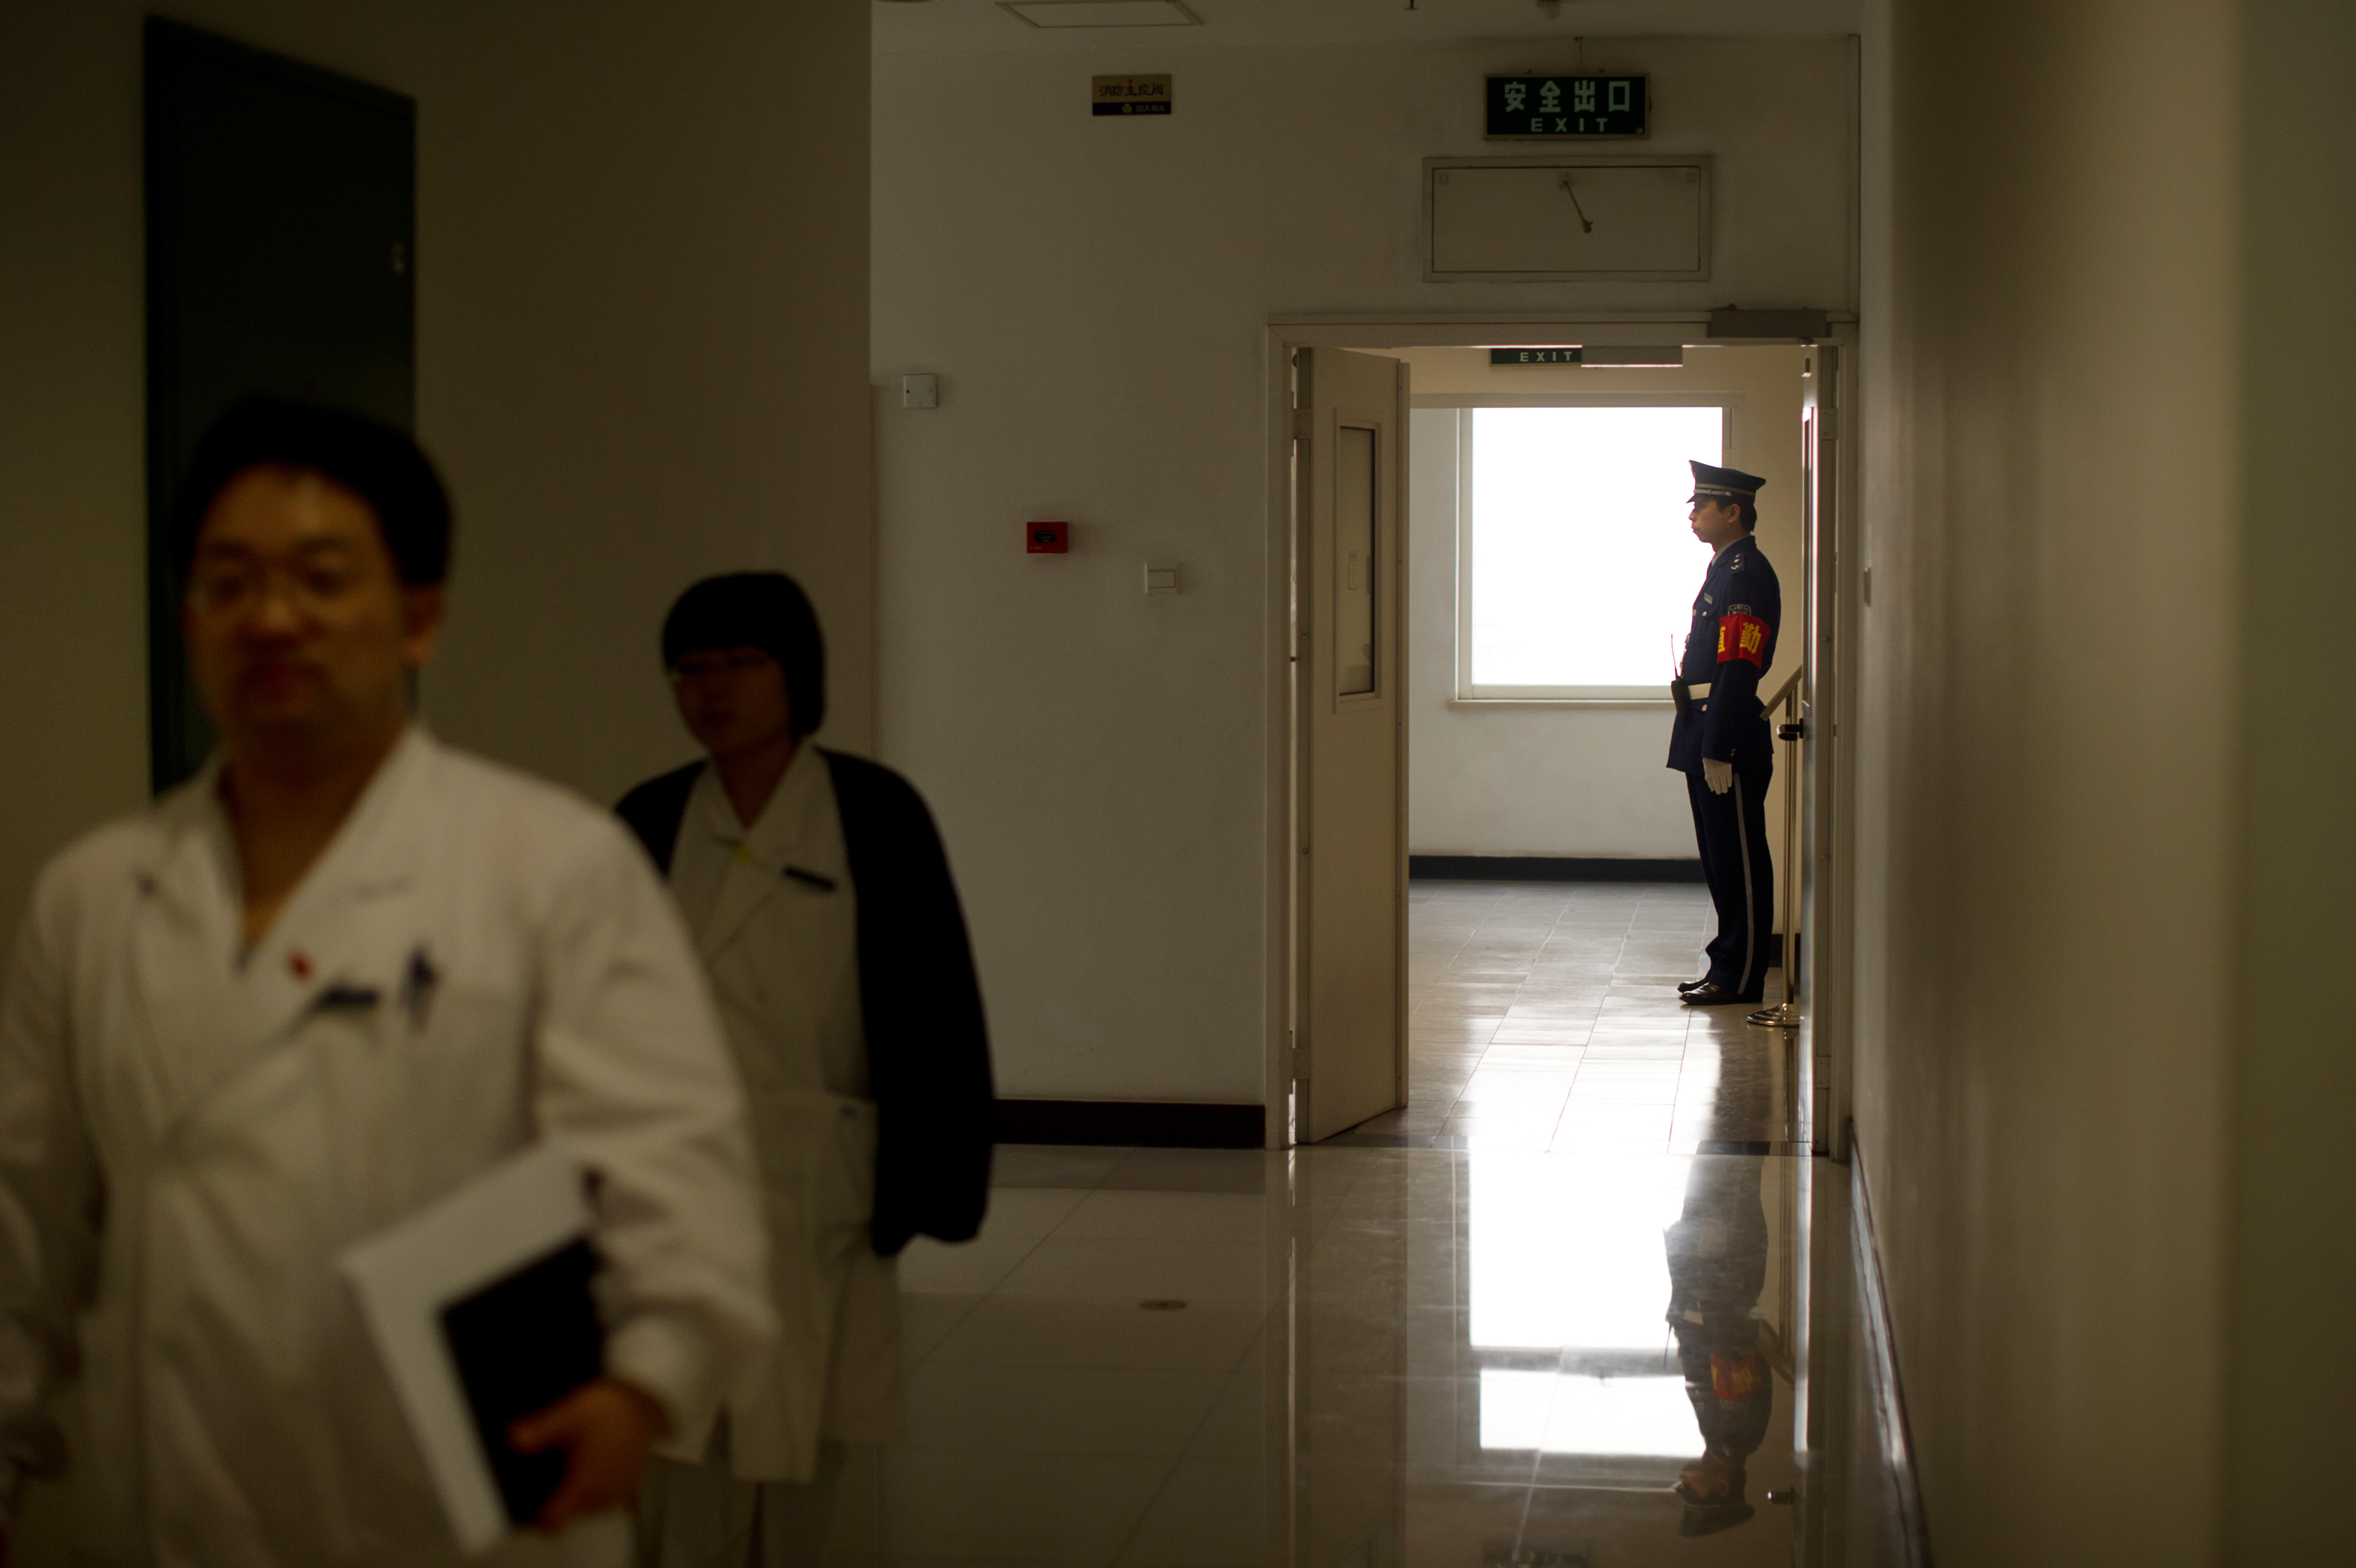 In this file photo, hospital staff walk past a security guard on duty in a hallway at the Beijing Friendship Hospital during a government supervised media tour on February 29, 2012.